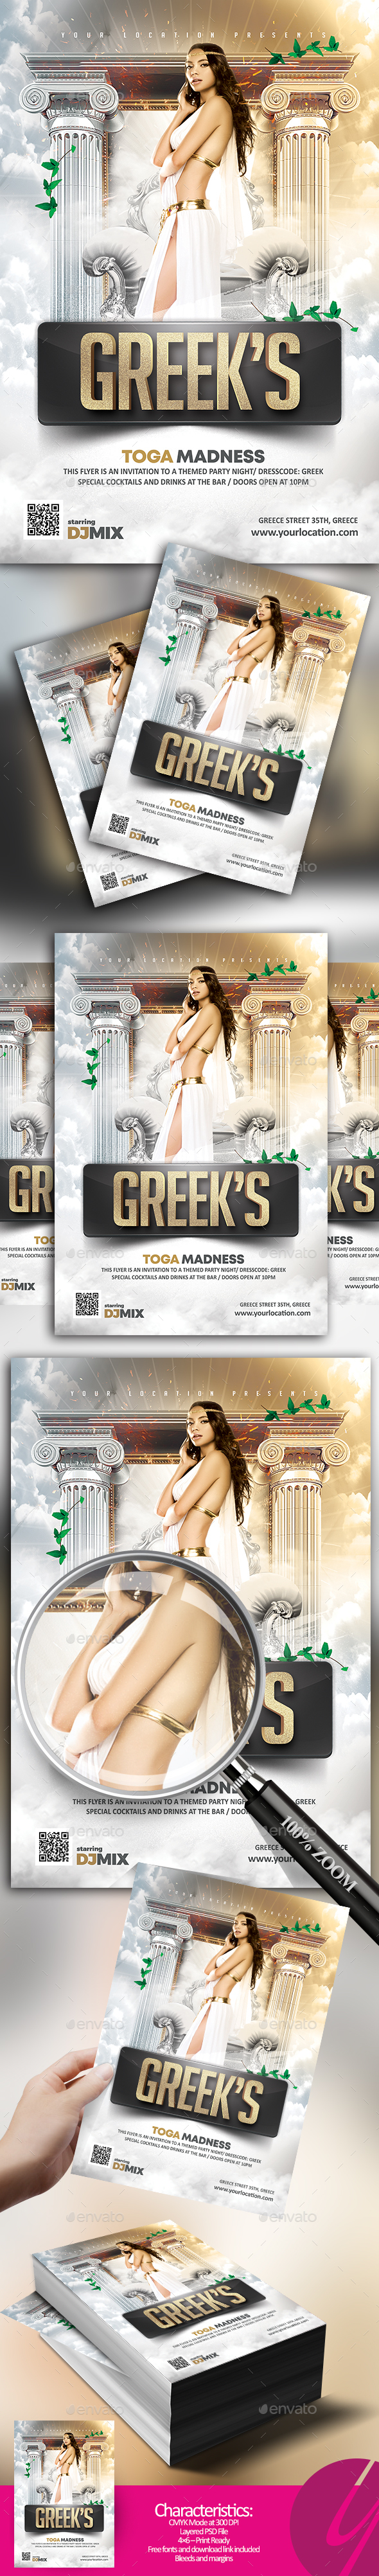 Greek's Toga Madness Flyer - Clubs & Parties Events